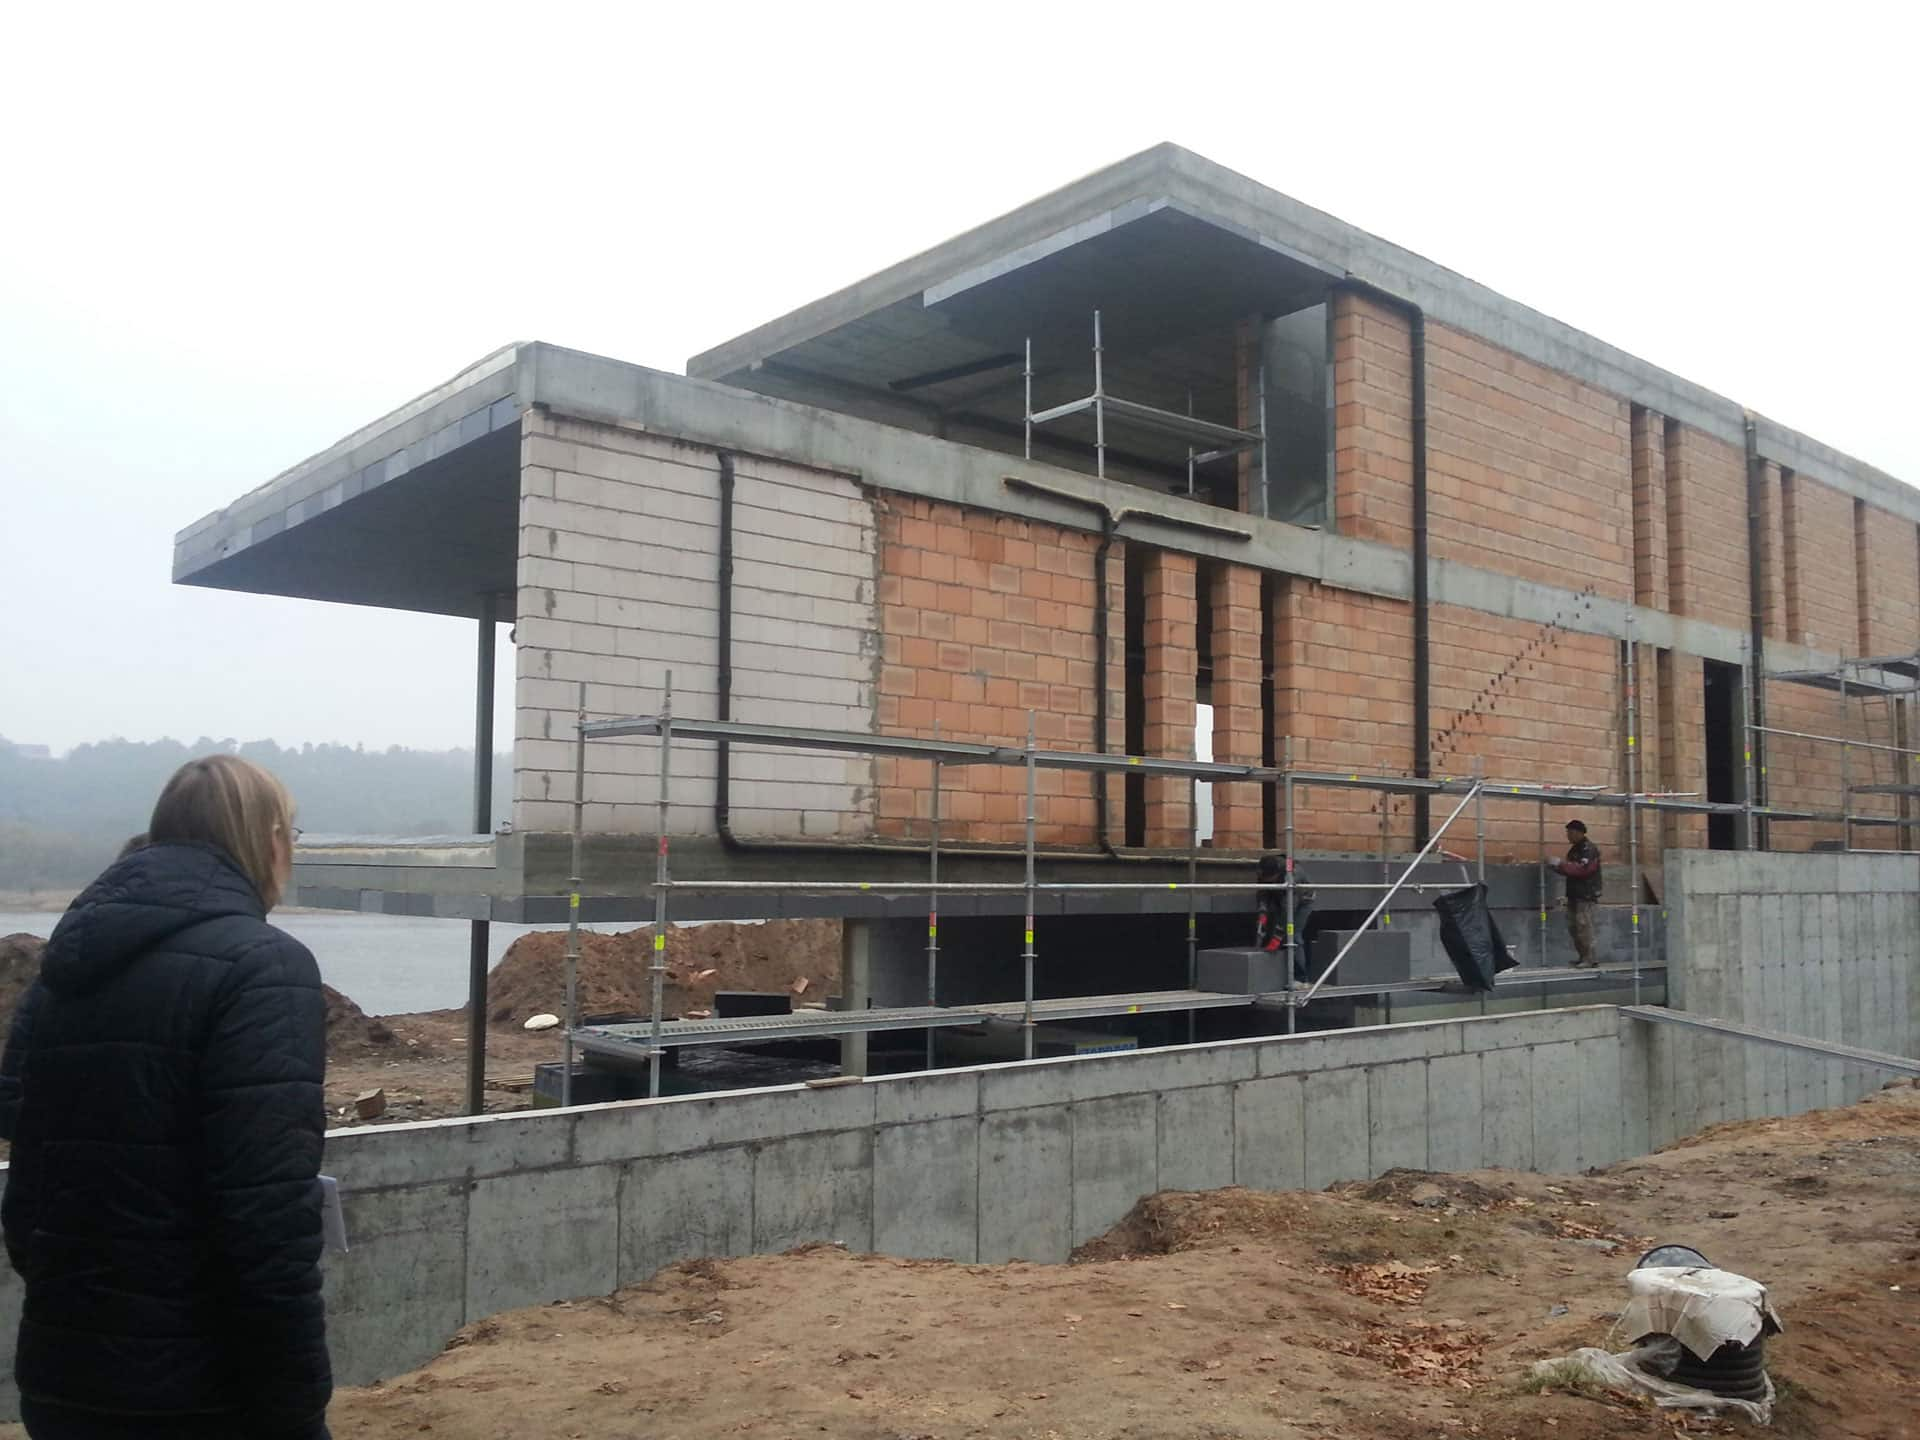 The back view of the construction the flat roof house in Luthuania